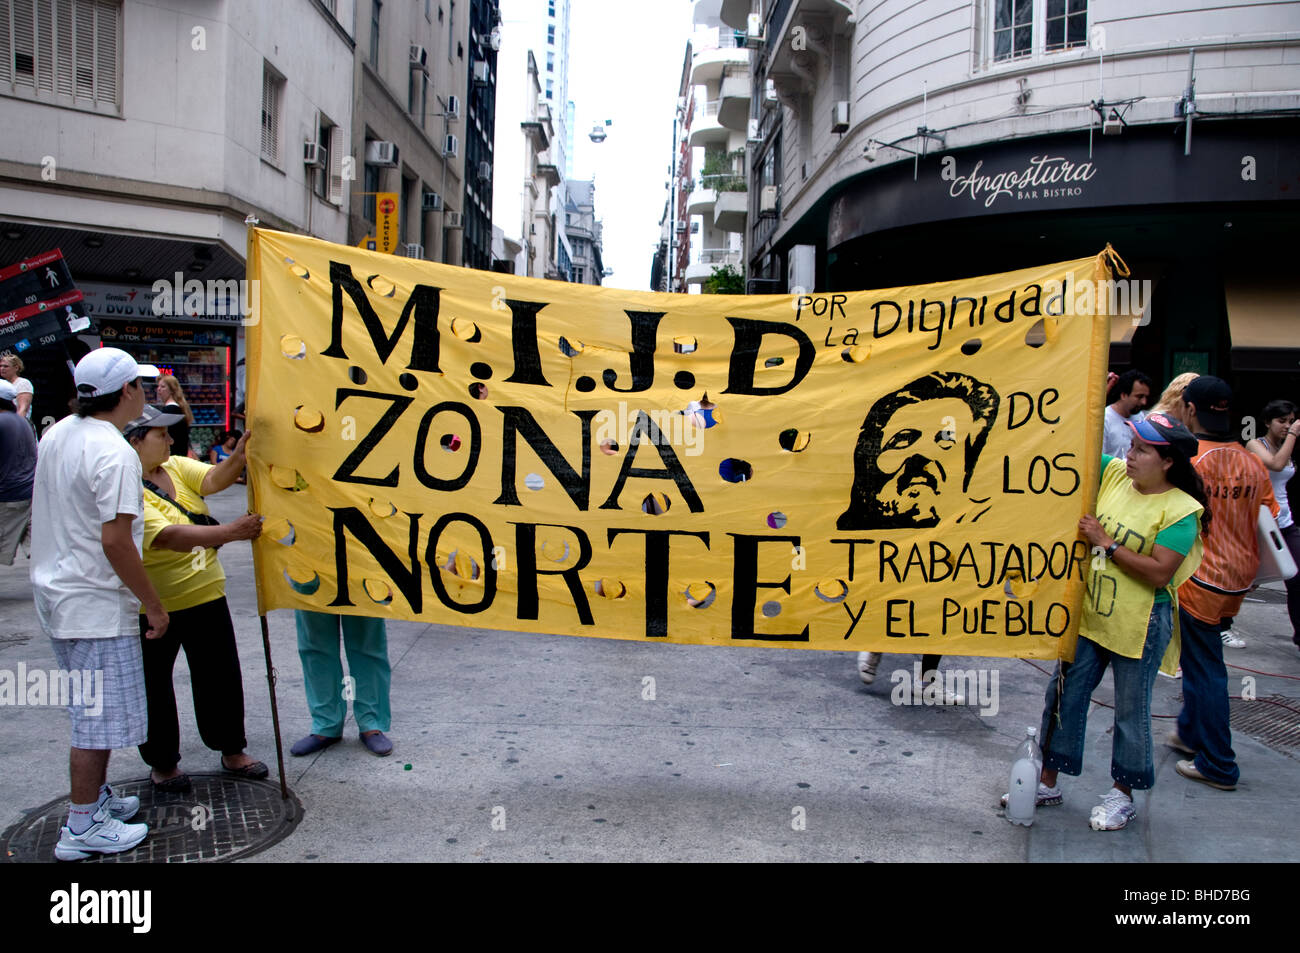 Demonstration protest march Zona Norte Buenos Aires Argentina Town City - Stock Image